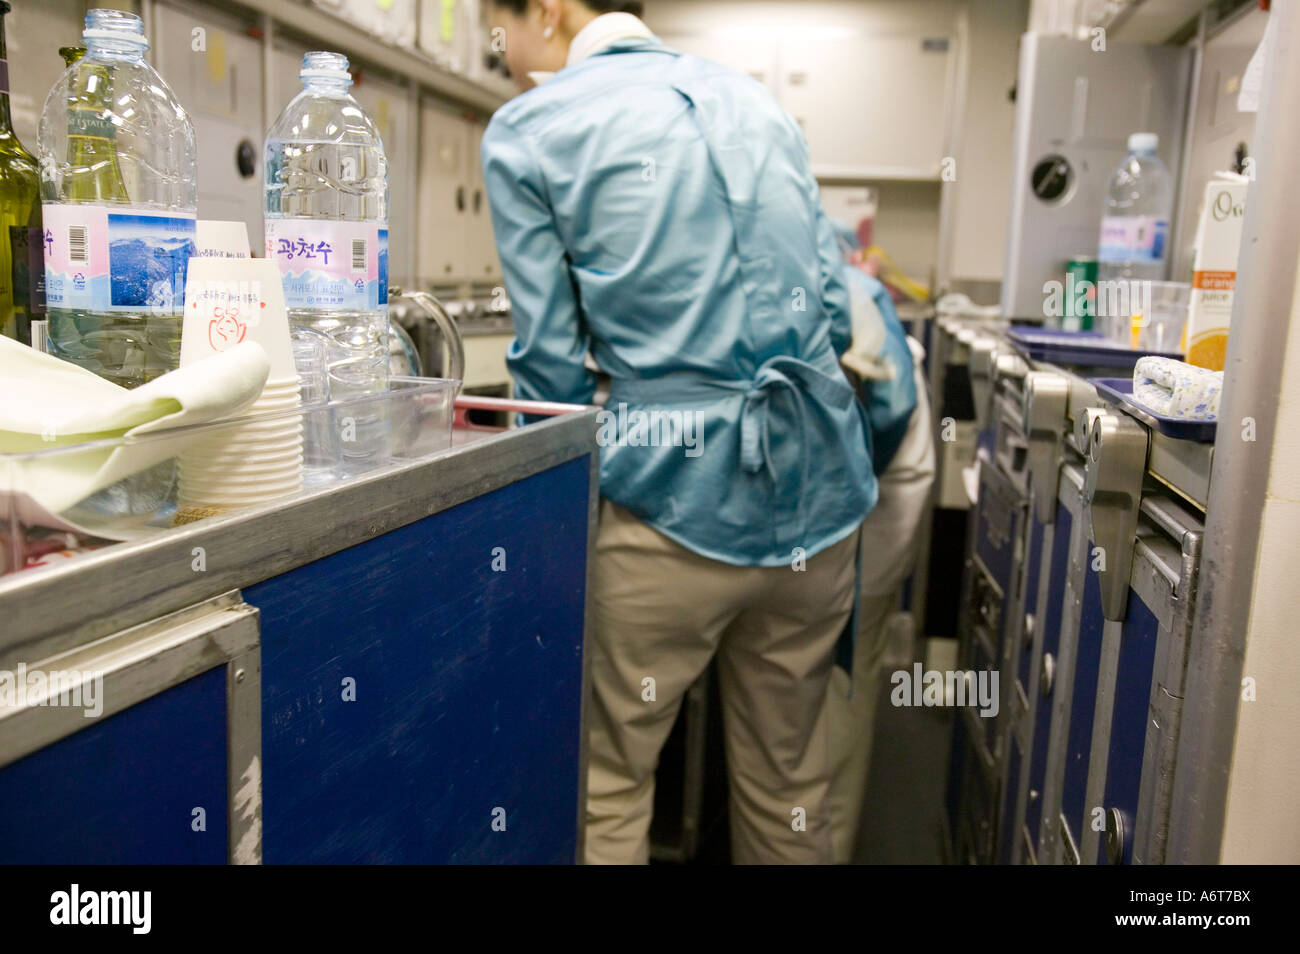 Airline Kitchen Stock Photos & Airline Kitchen Stock Images - Alamy